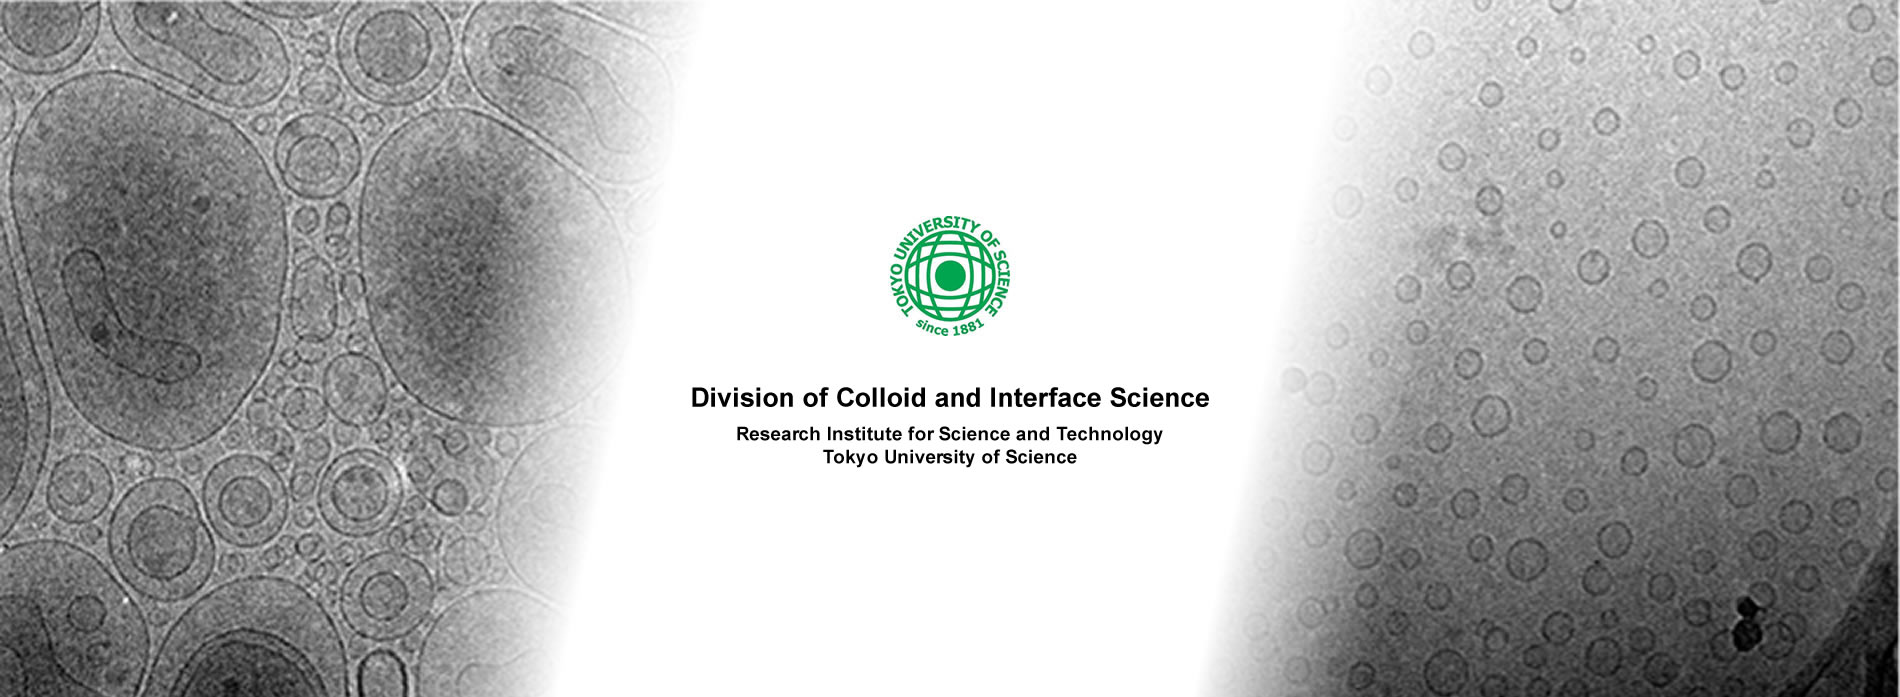 Division of Colloid and Interface Science Research Institute for Science and Technology Tokyo University of Science